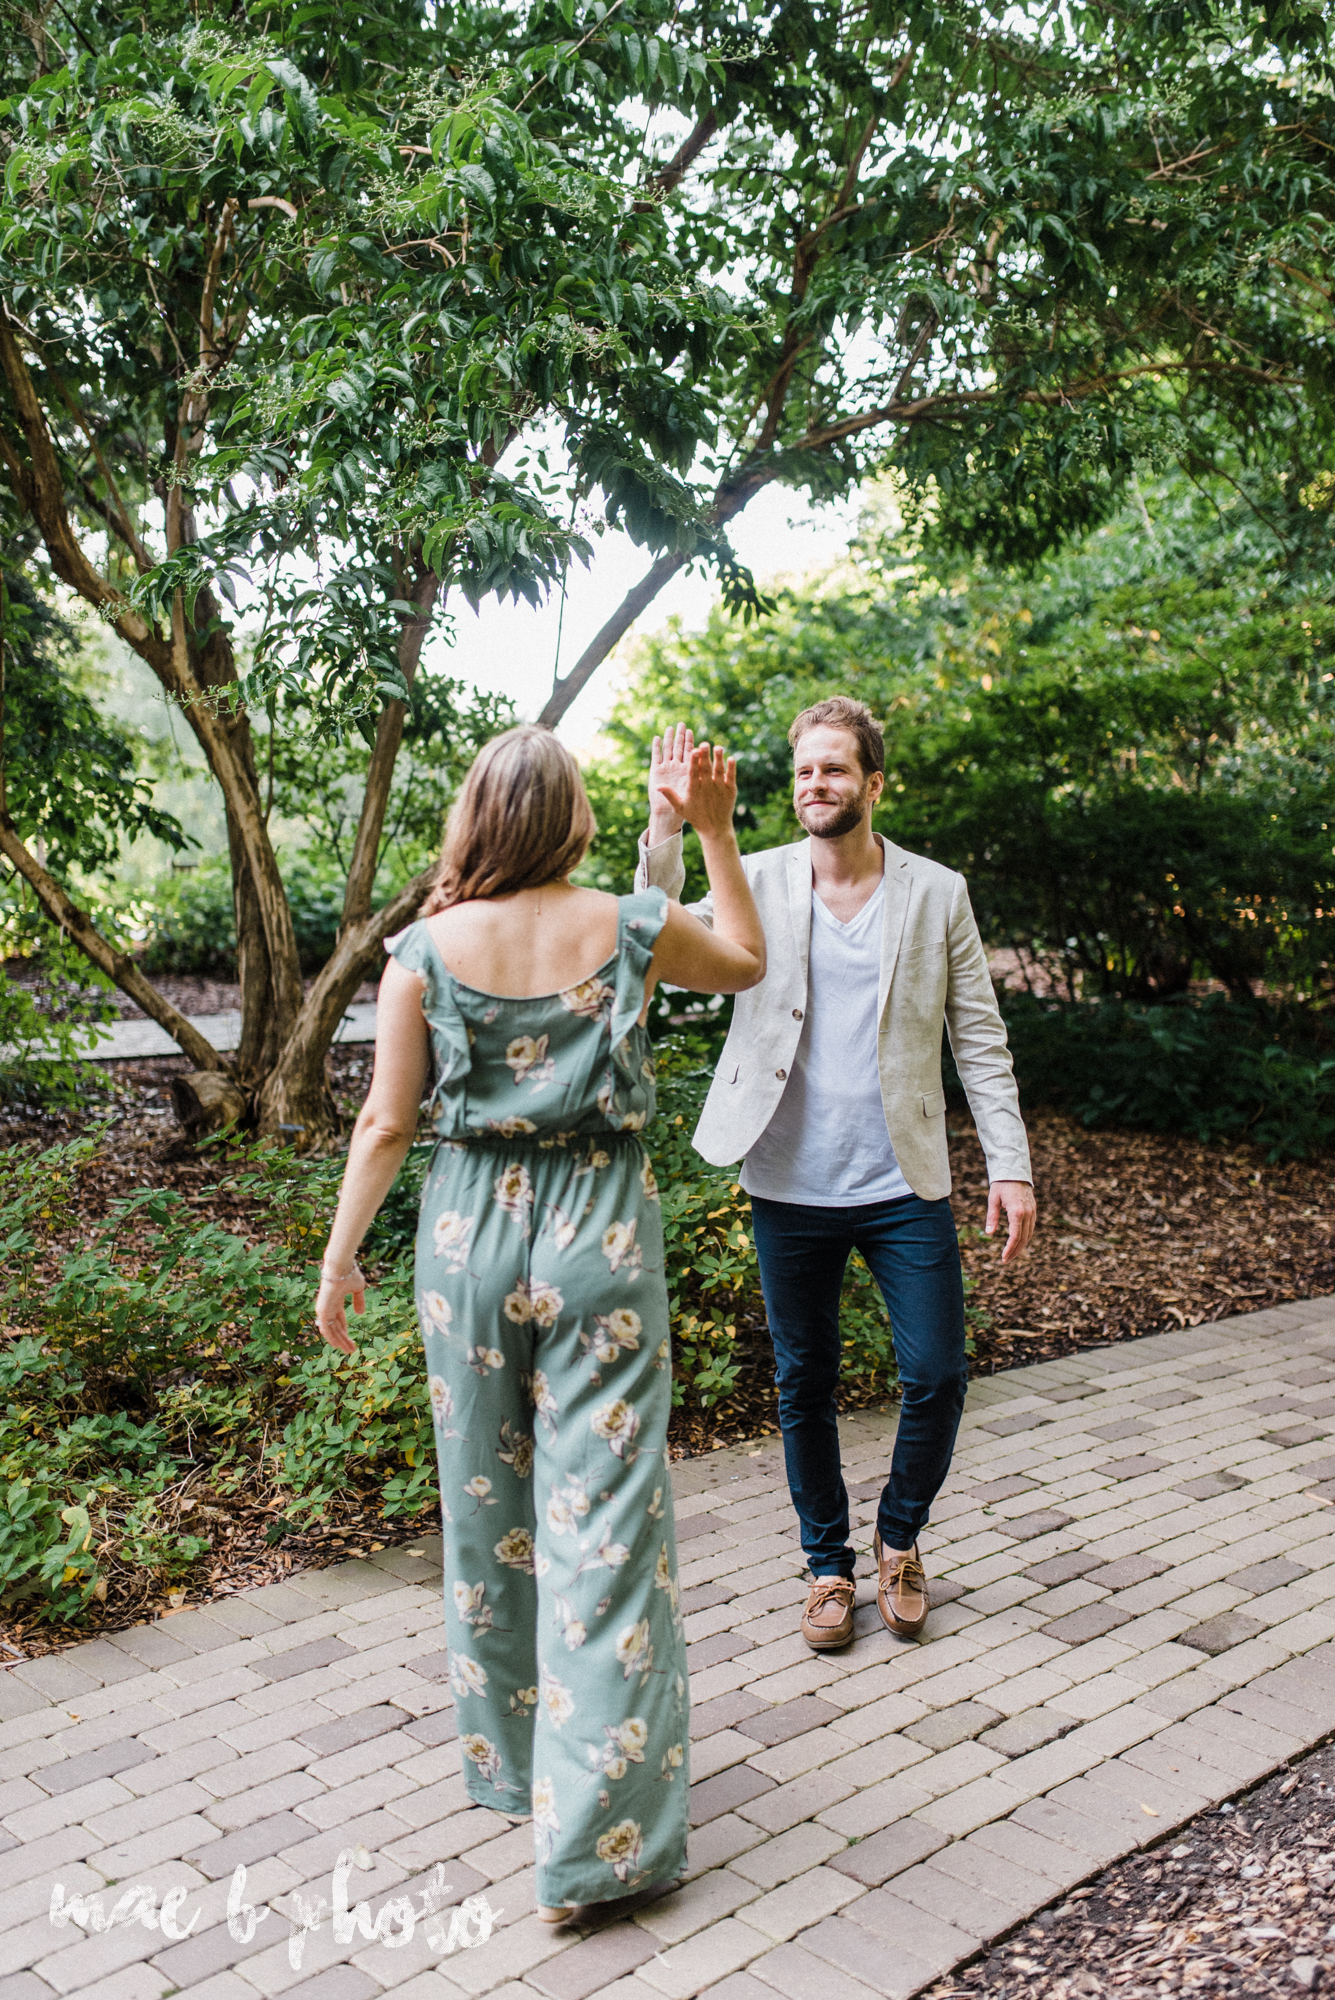 lauren and steve's summer engagement session at the rose gardens and lanterman's mill in mill creek park in youngstown ohio photographed by youngstown wedding photographer mae b photo-20.jpg